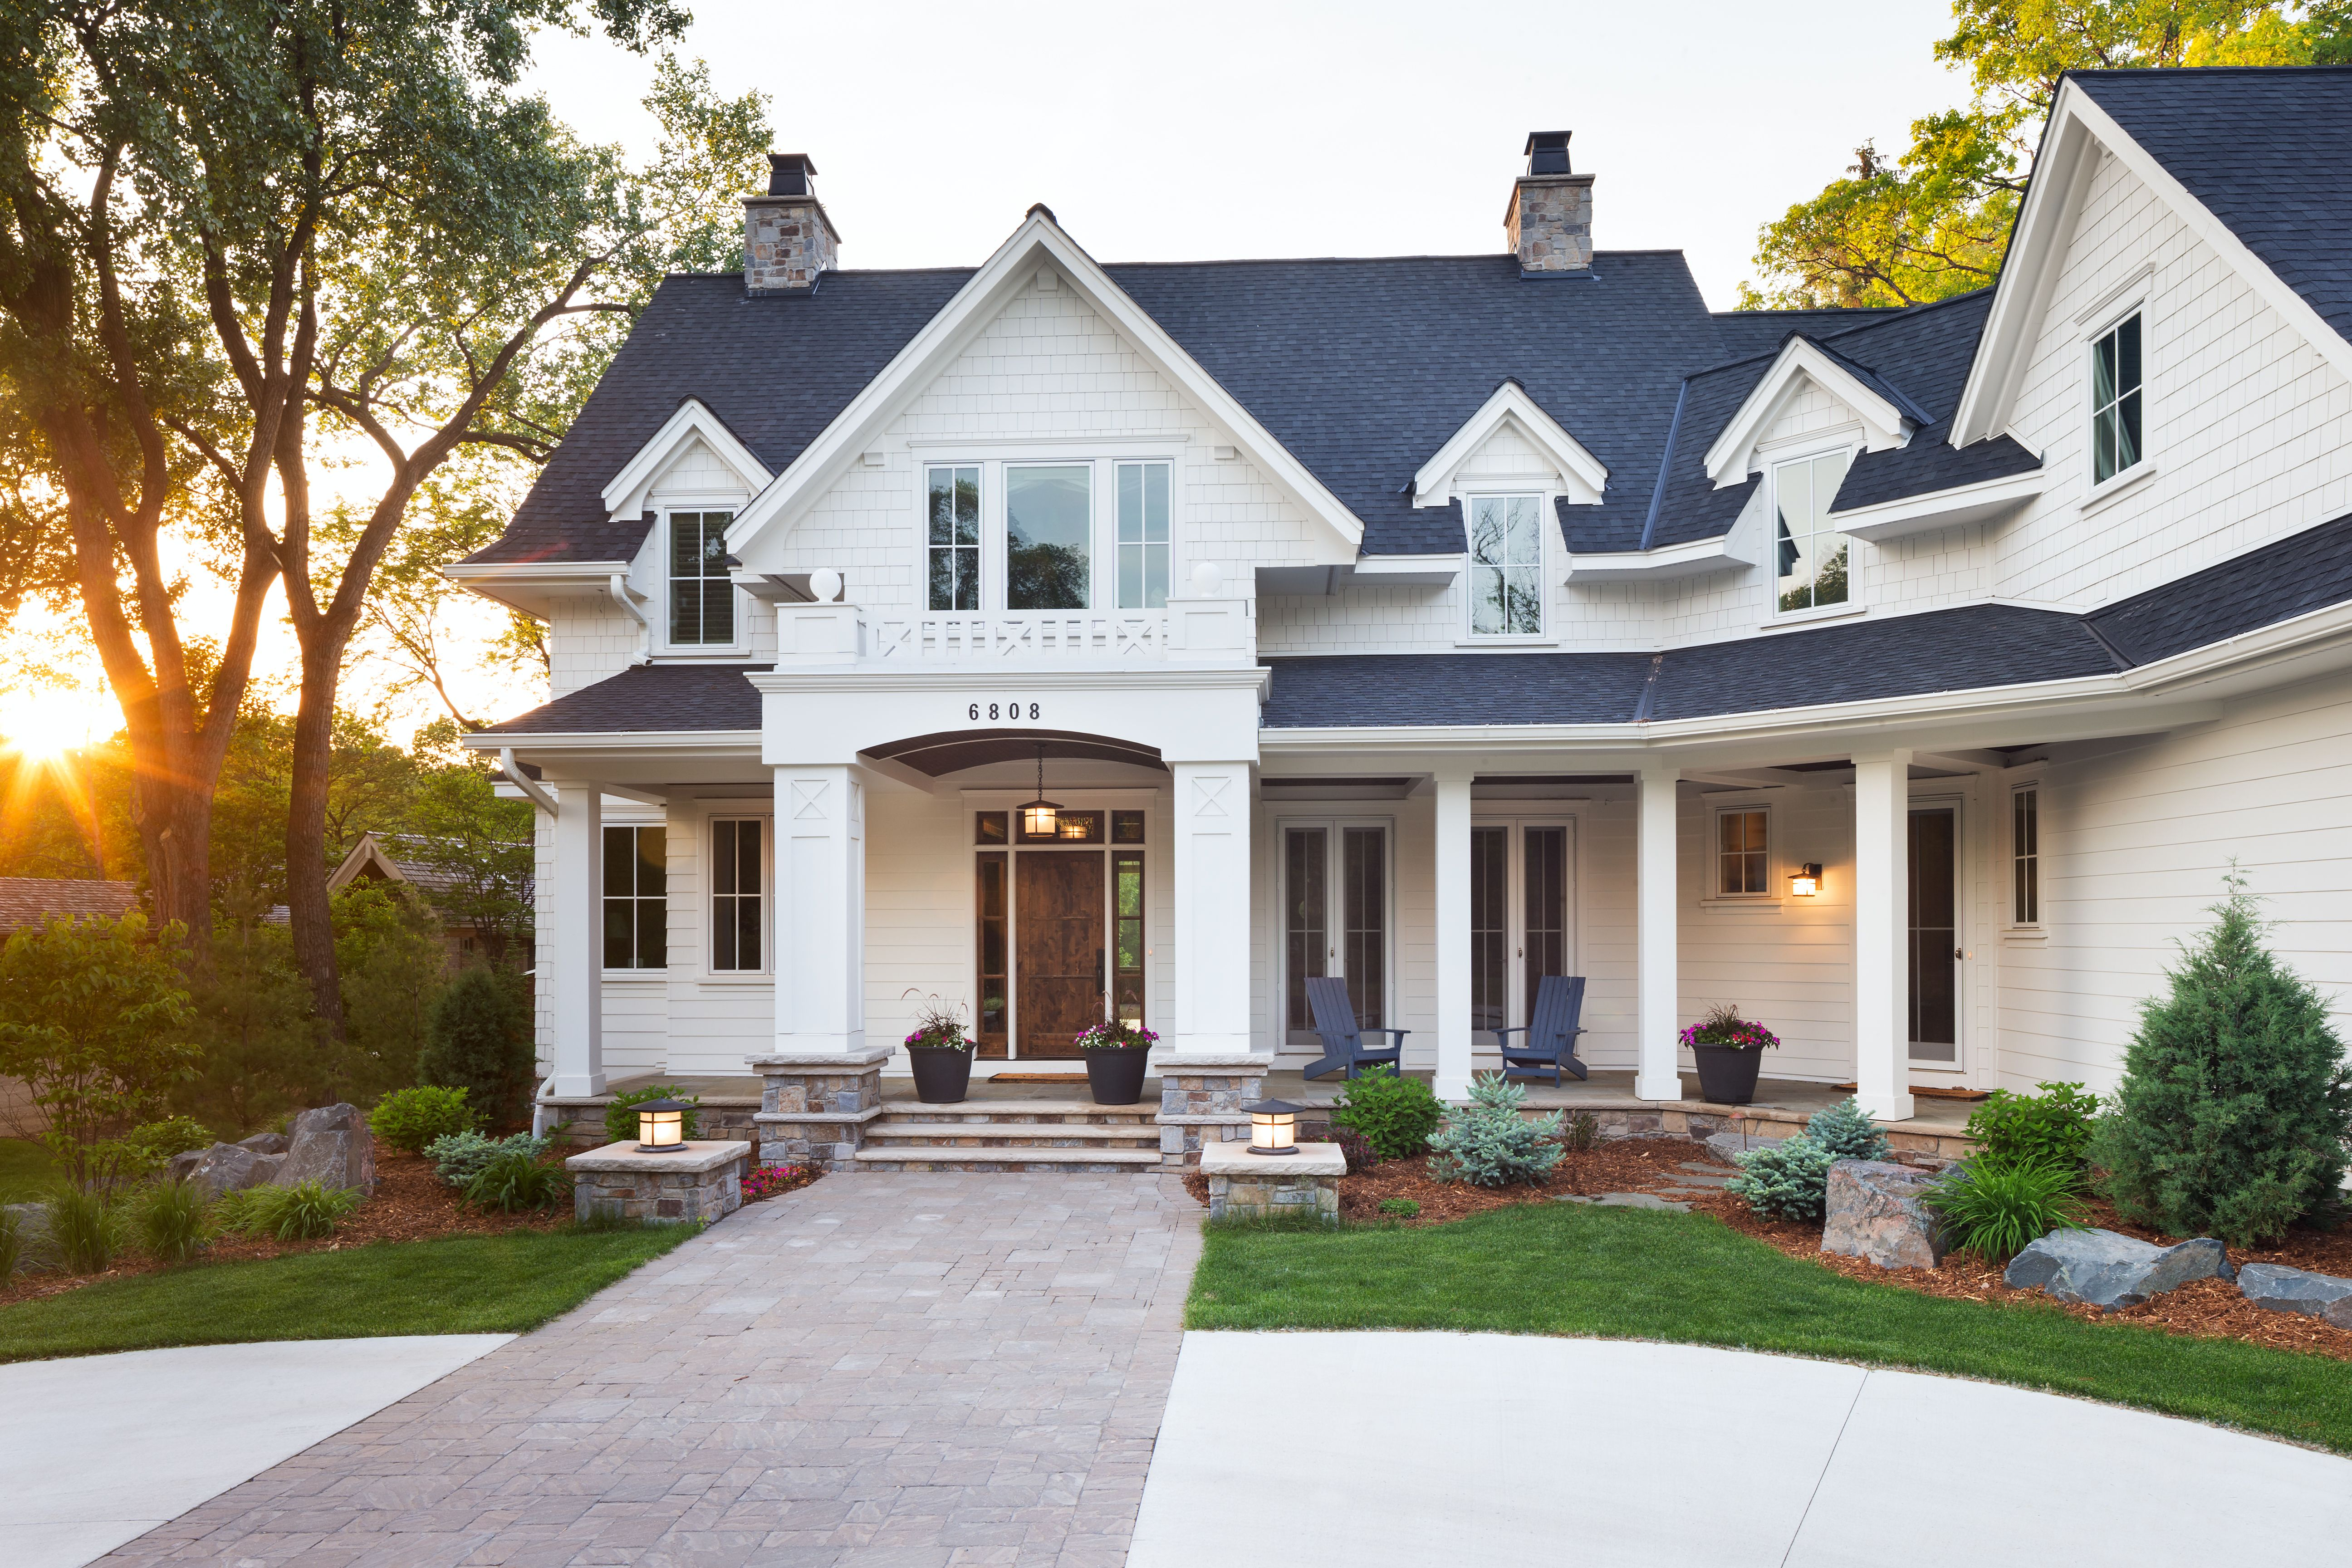 I love the outside look and feel of this home the space and land